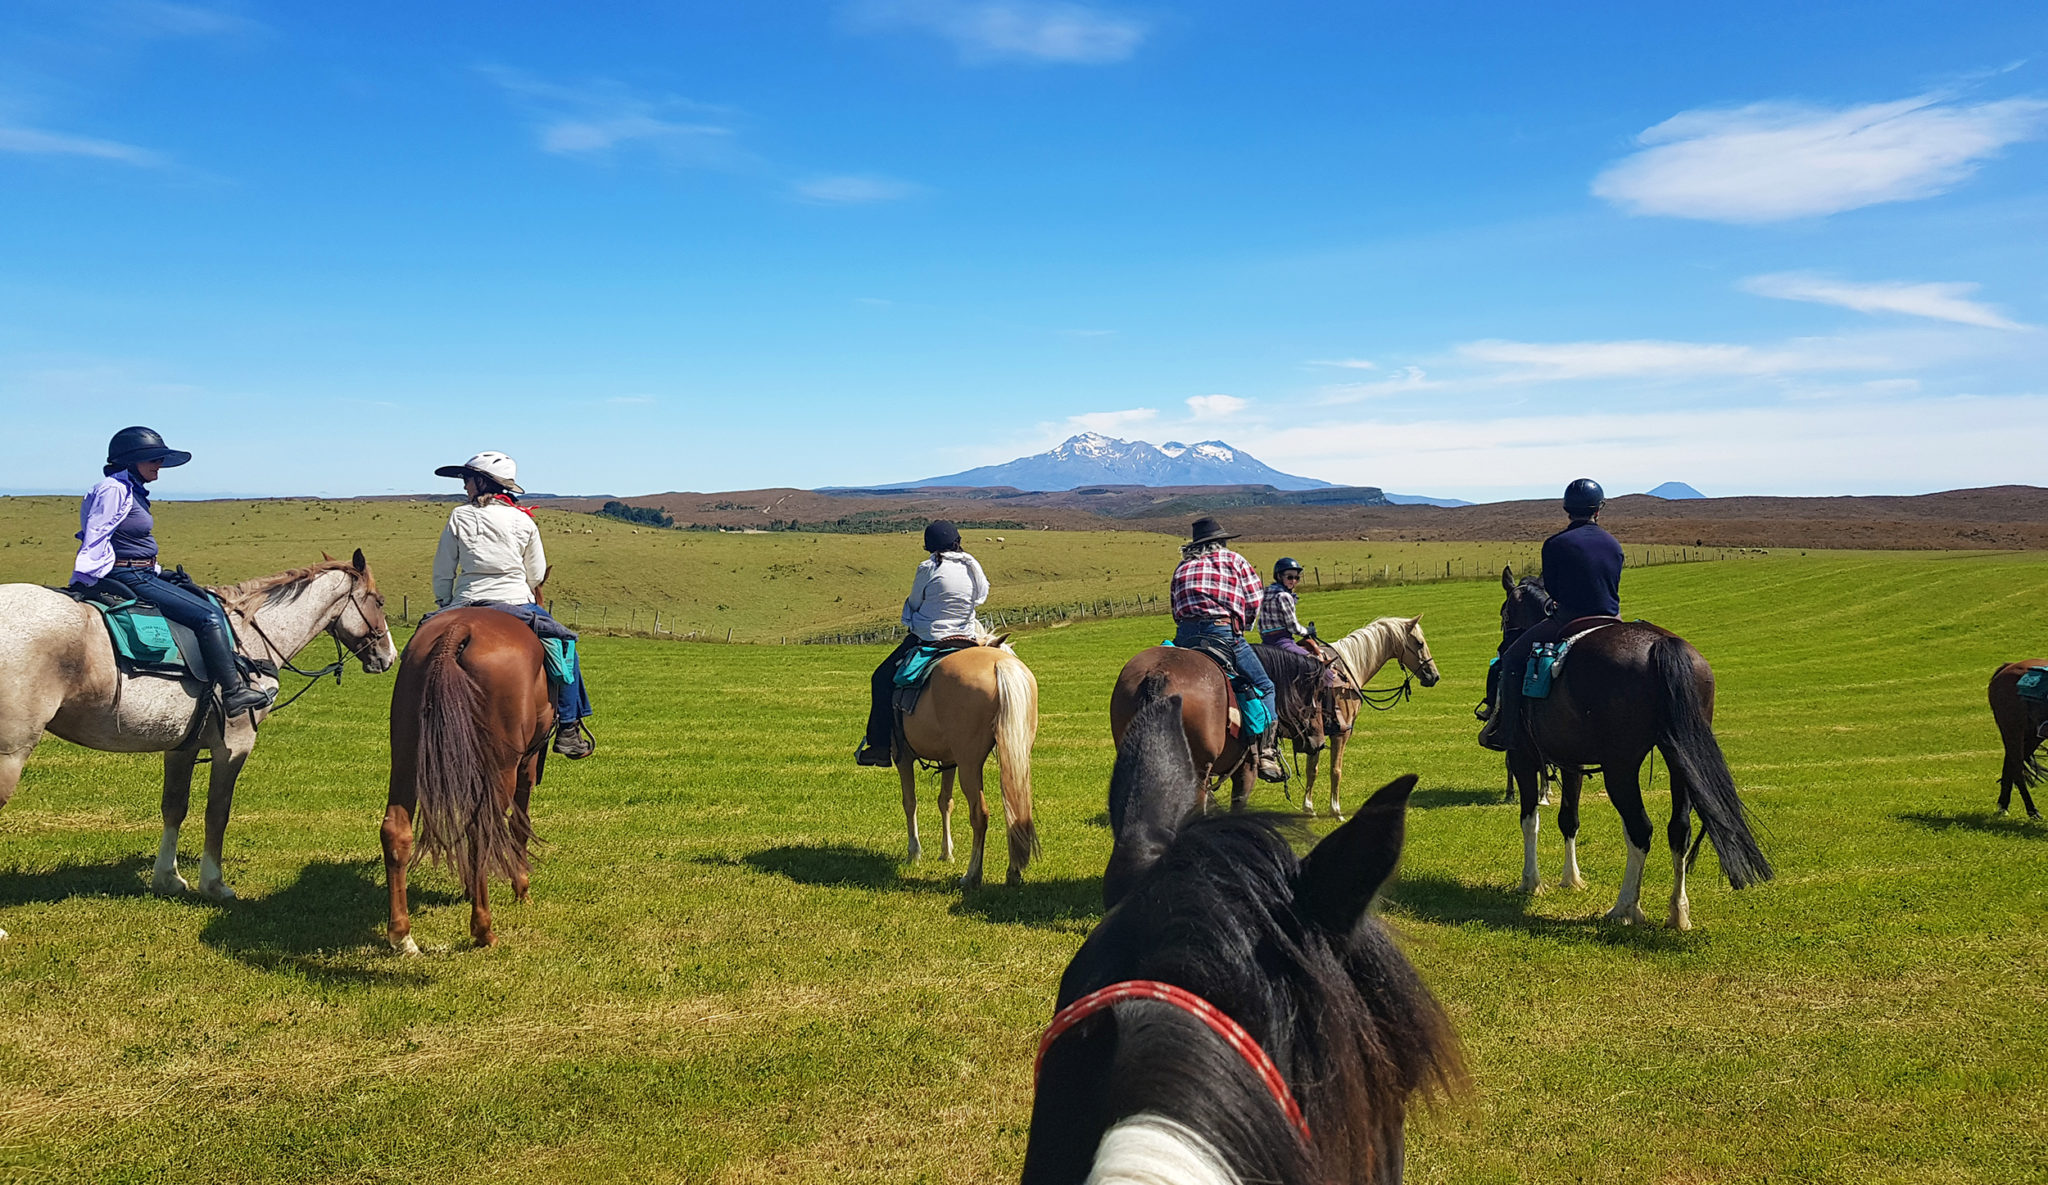 Feedback on the River Valley Ride, North Island, New Zealand - Globetrotting horse riding holidays